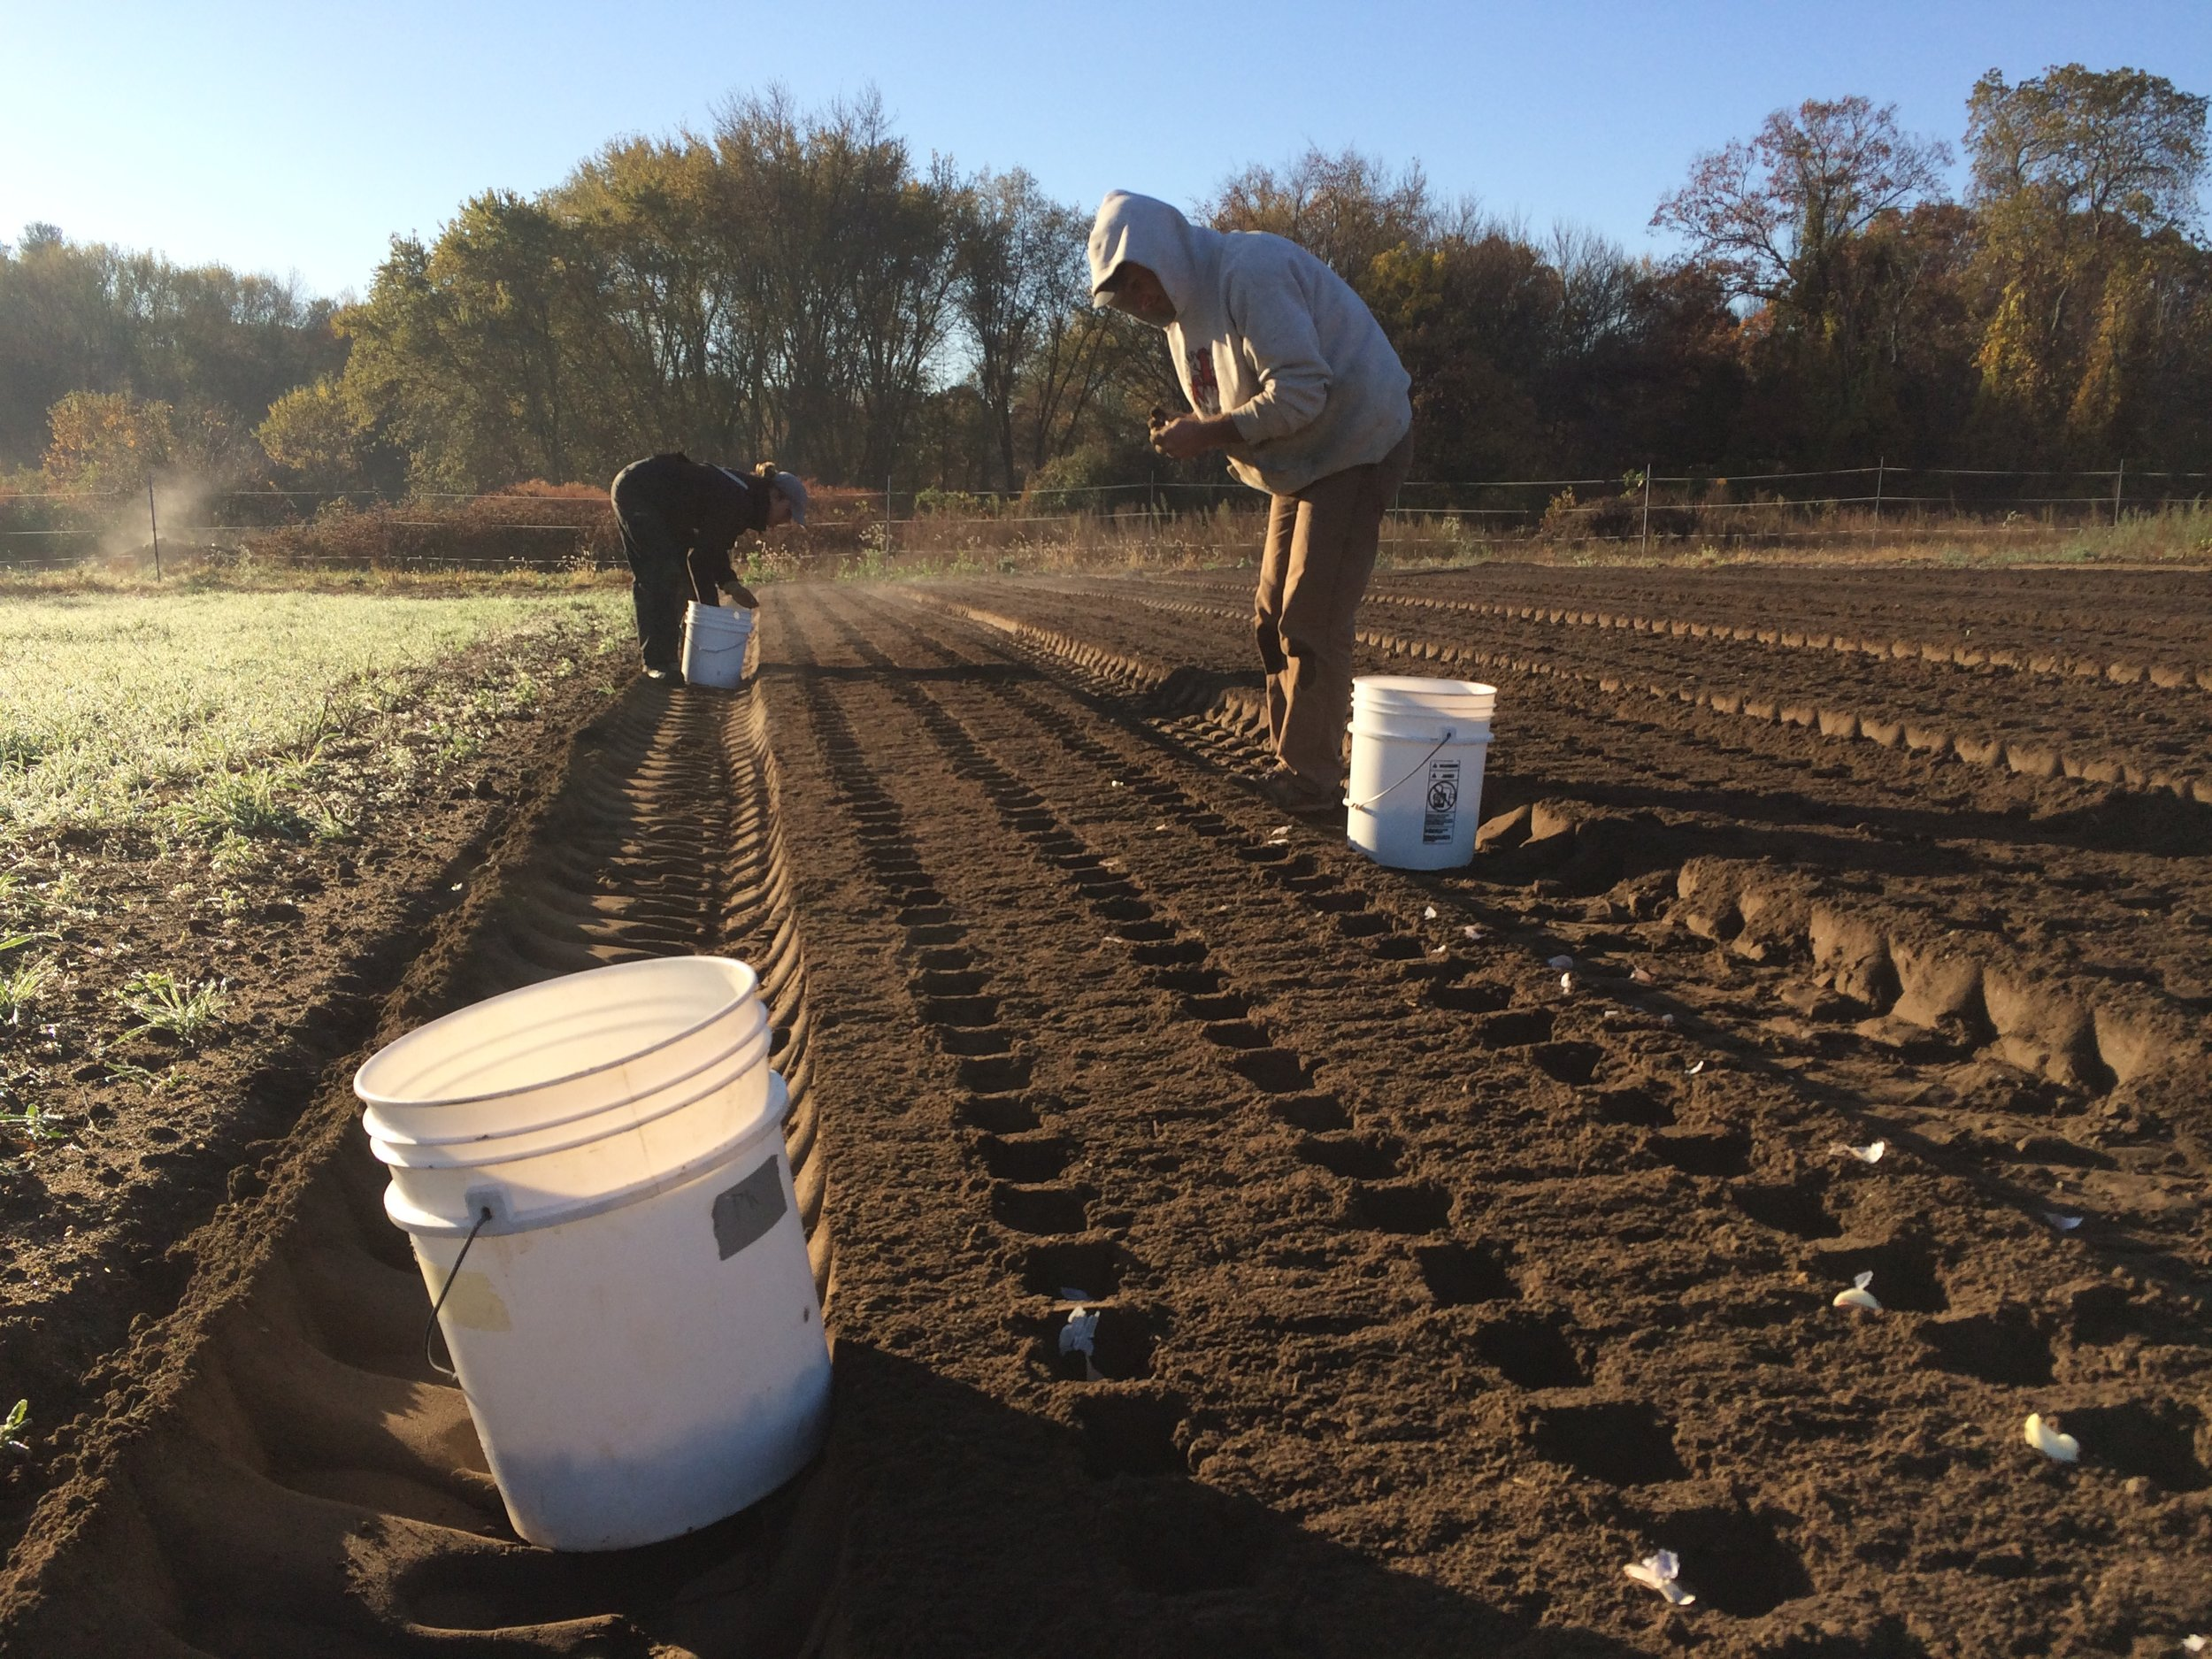 Shaun and Lise plant garlic on Saturday with some lingering morning mist.